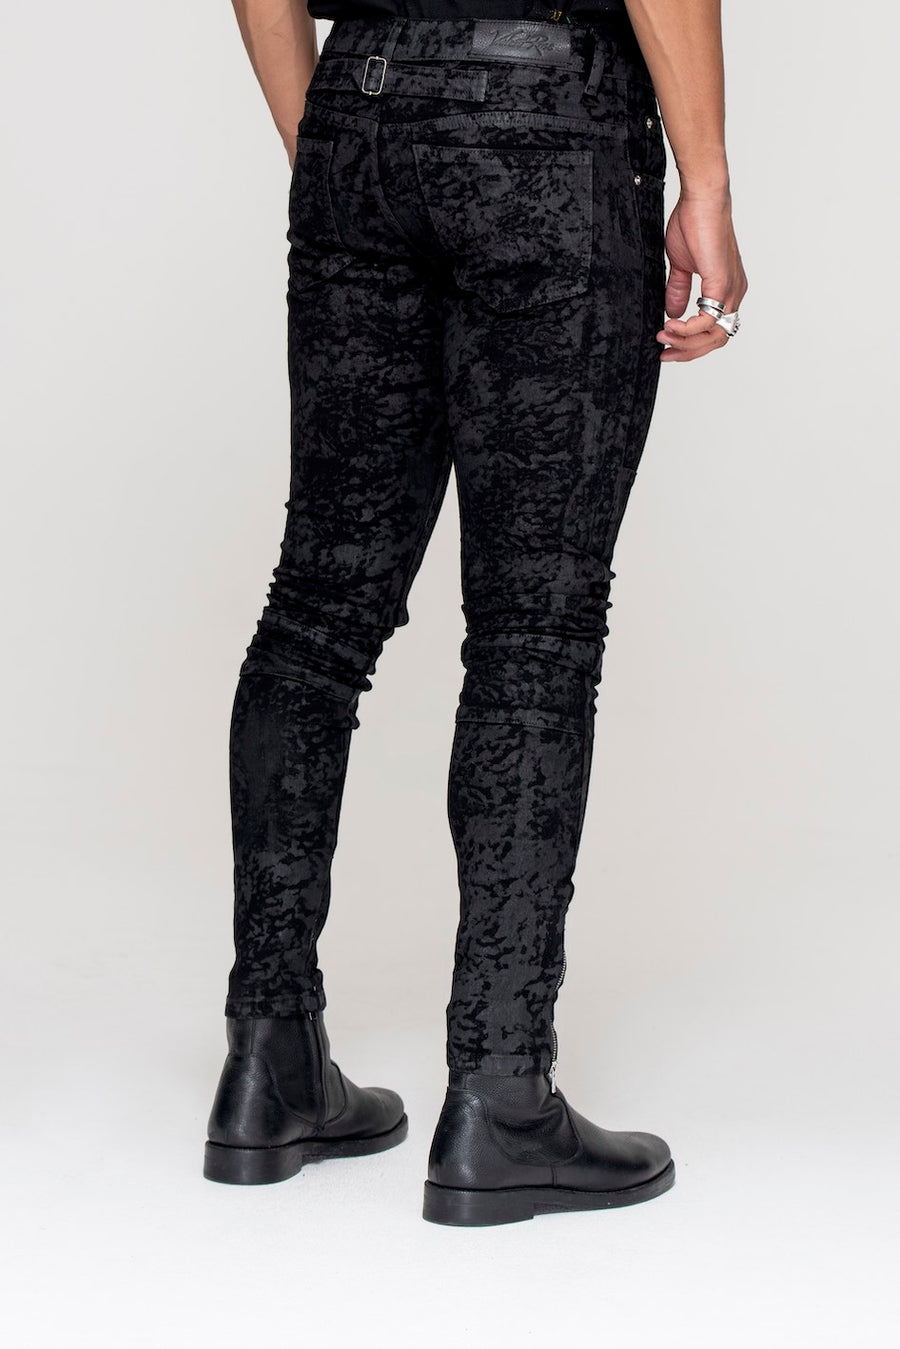 Essential Jeans Black Wax